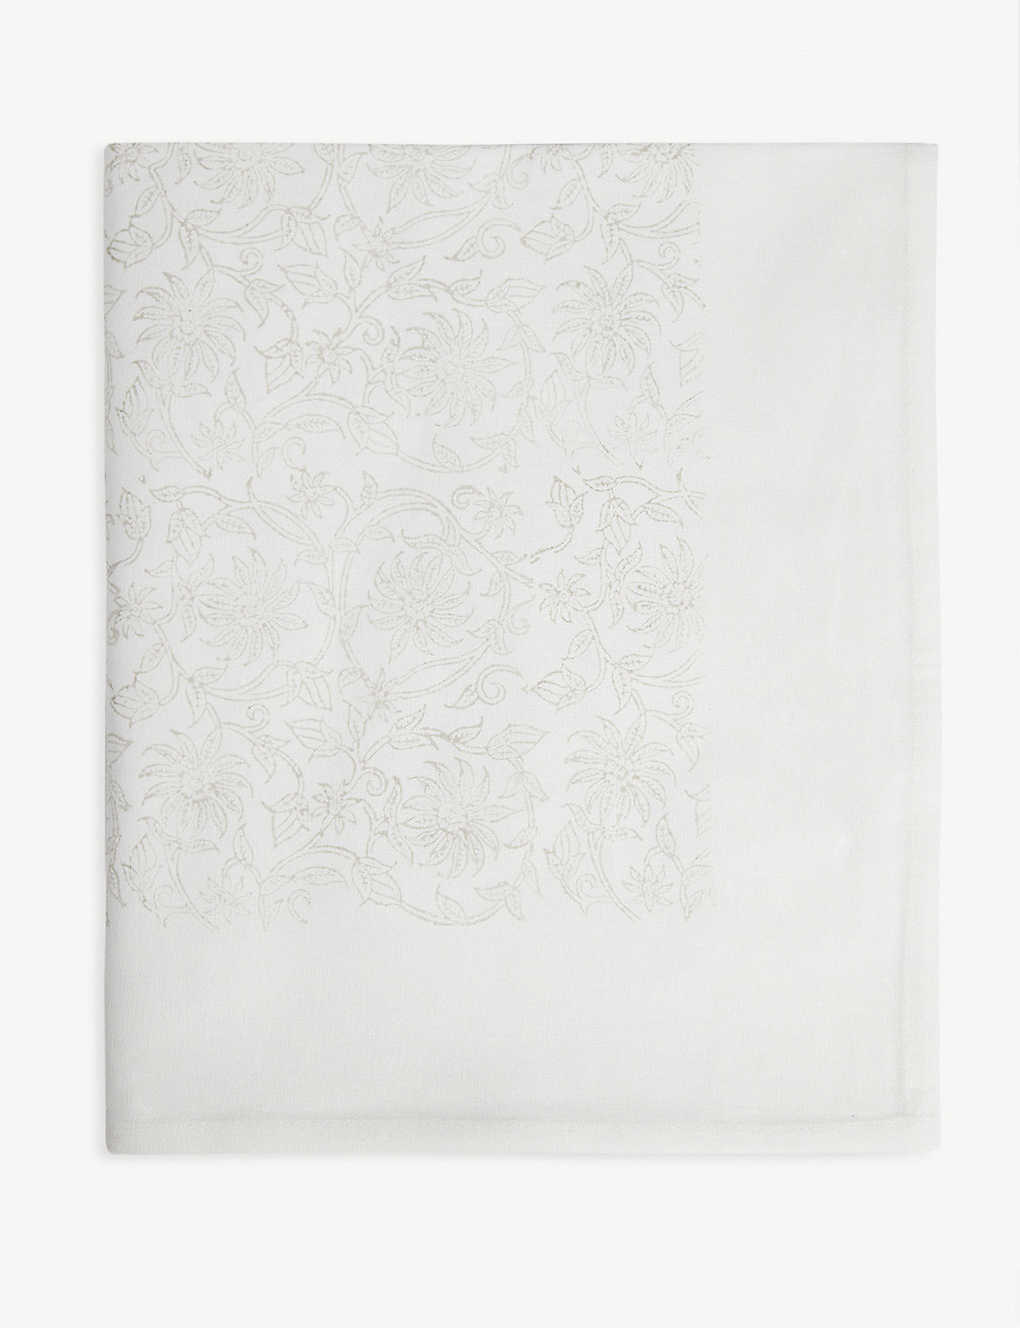 THE WHITE COMPANY: Block print tablecloth 140cm x 230cm